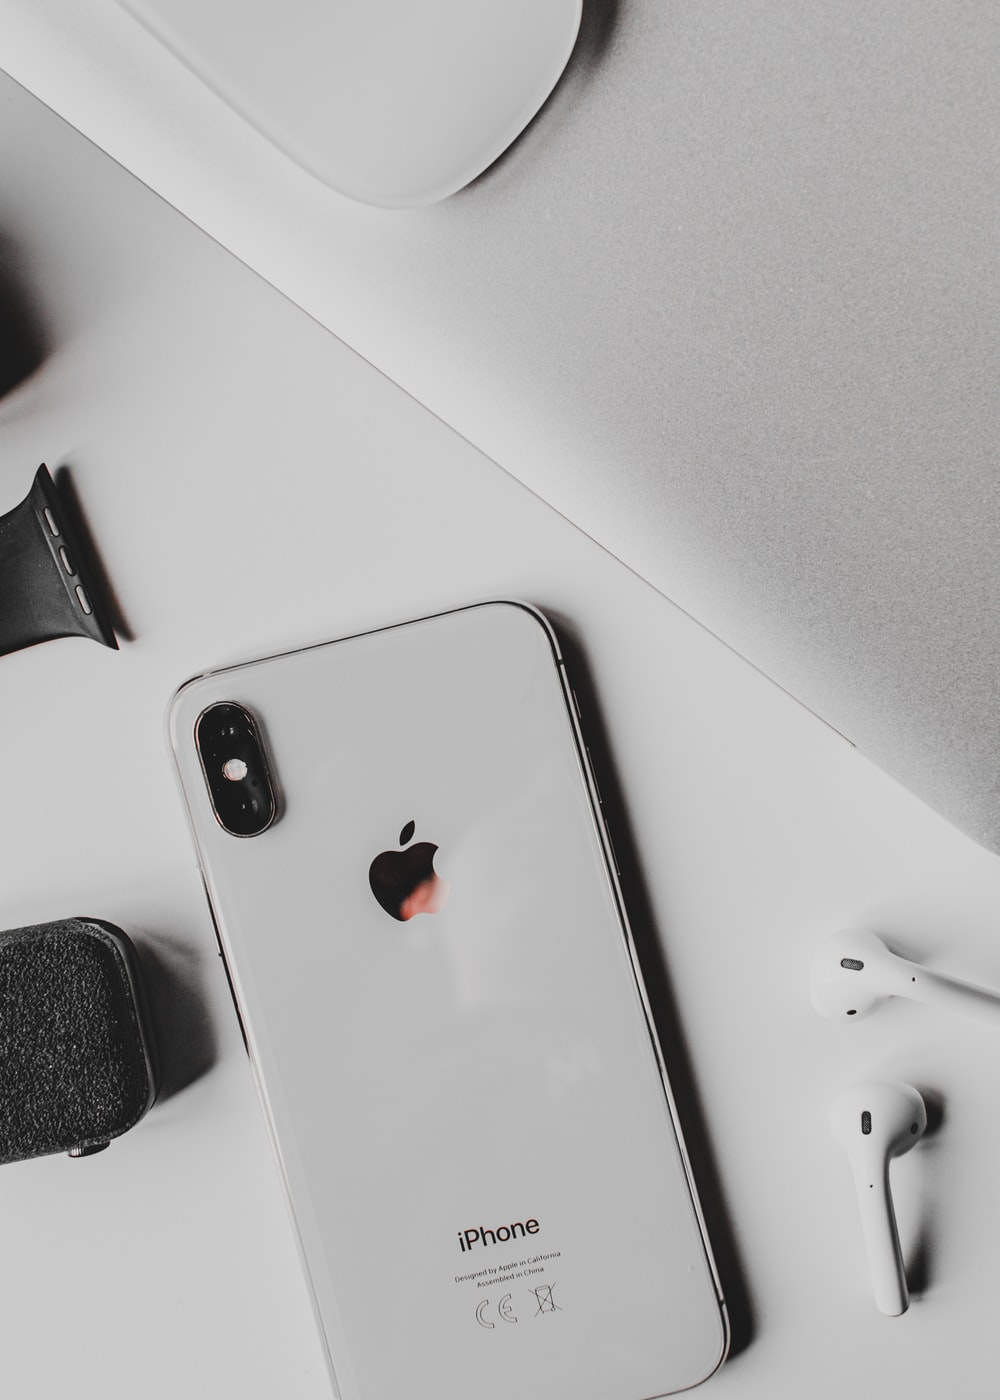 silver iphone 6 on white table